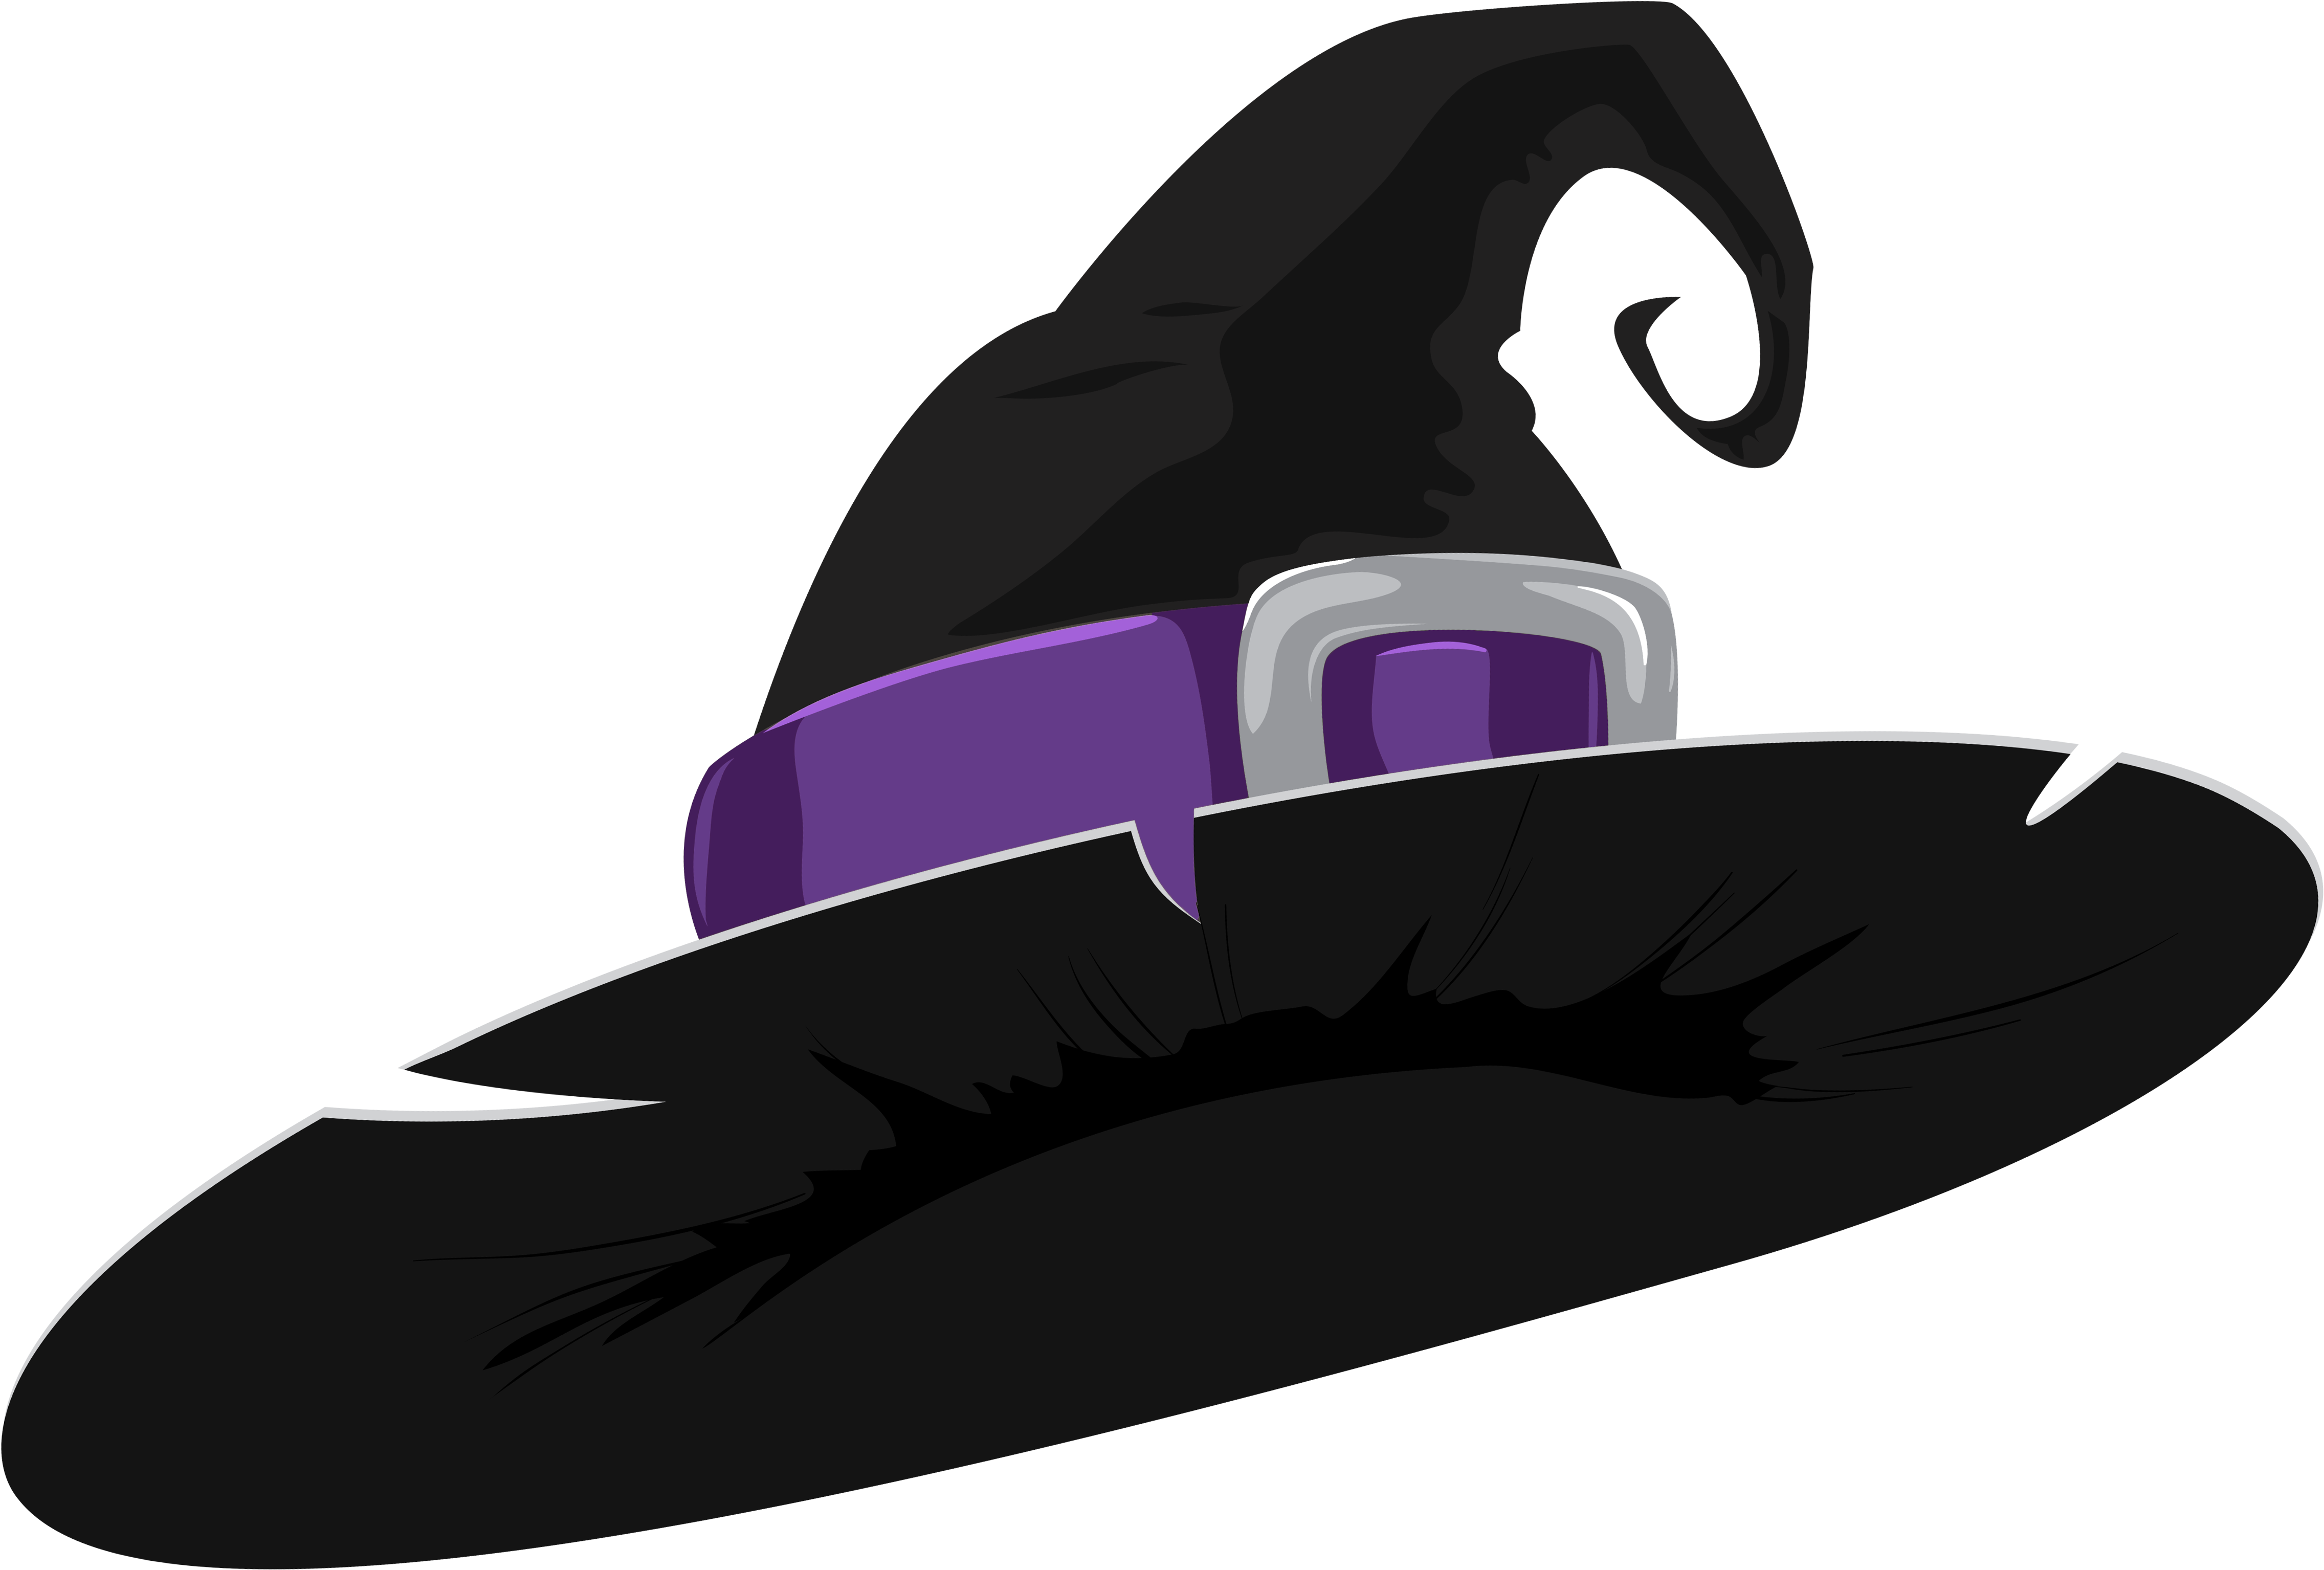 Witch Hat Black And Purple Clipart Image Halloween Witch Hat Png Transparent Cartoon Jing Fm